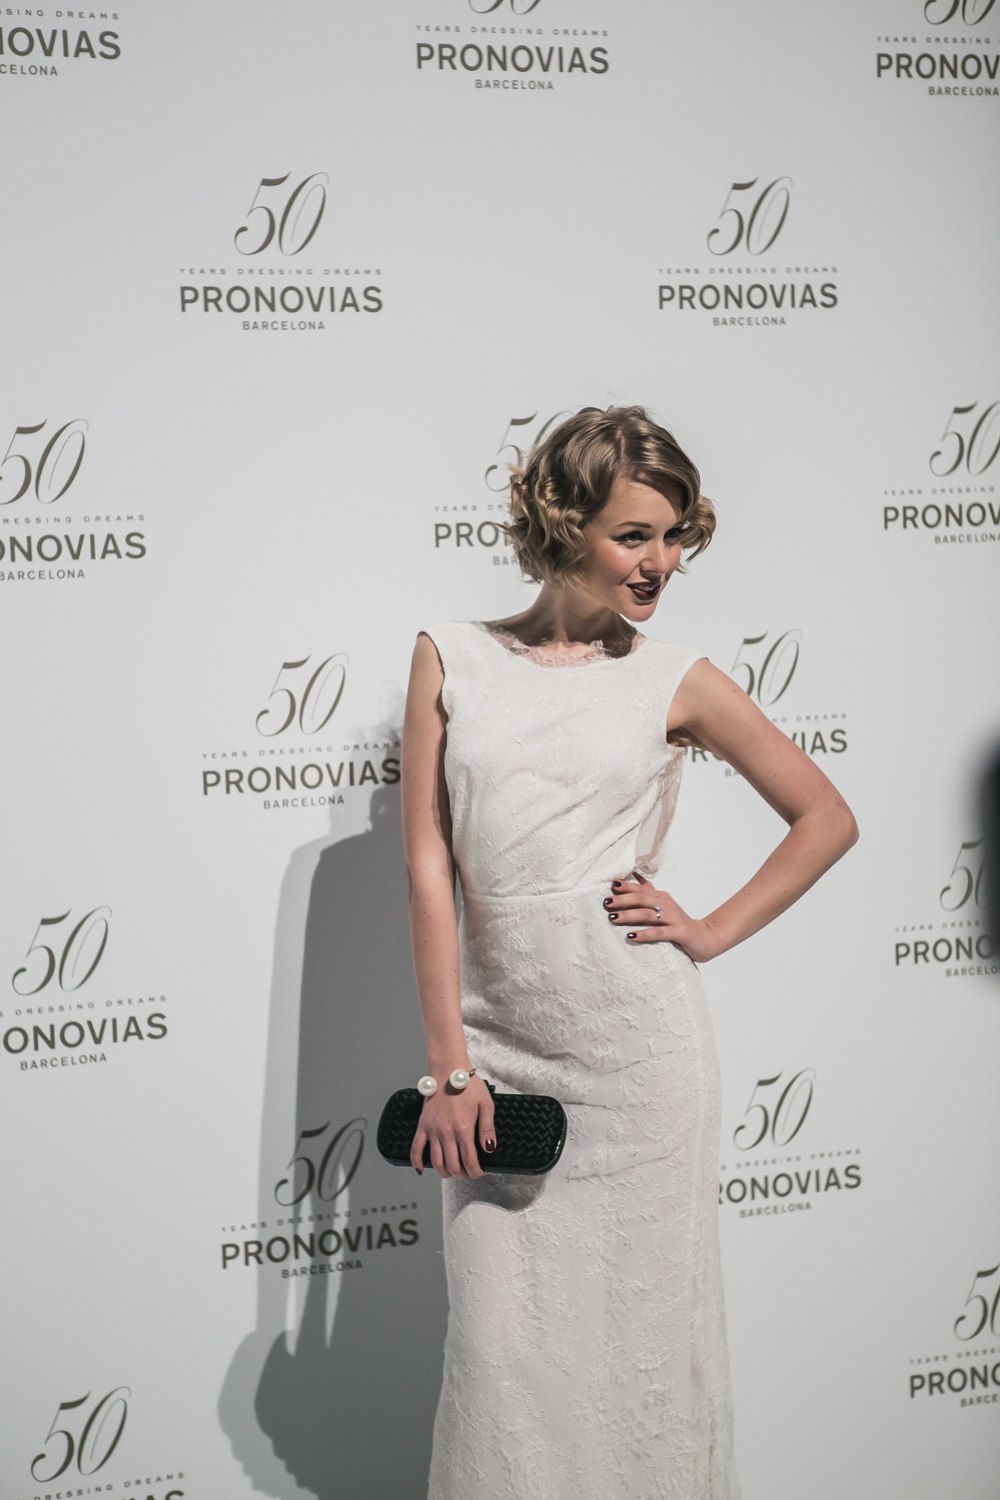 darya kamalova fashion blogger from thecablook in trip in Barcelona Spain with Pronovias 2015 wedding dresses collection catwalk wearing uel camilo white gown bottega veneta knot clutch and black lips-2173